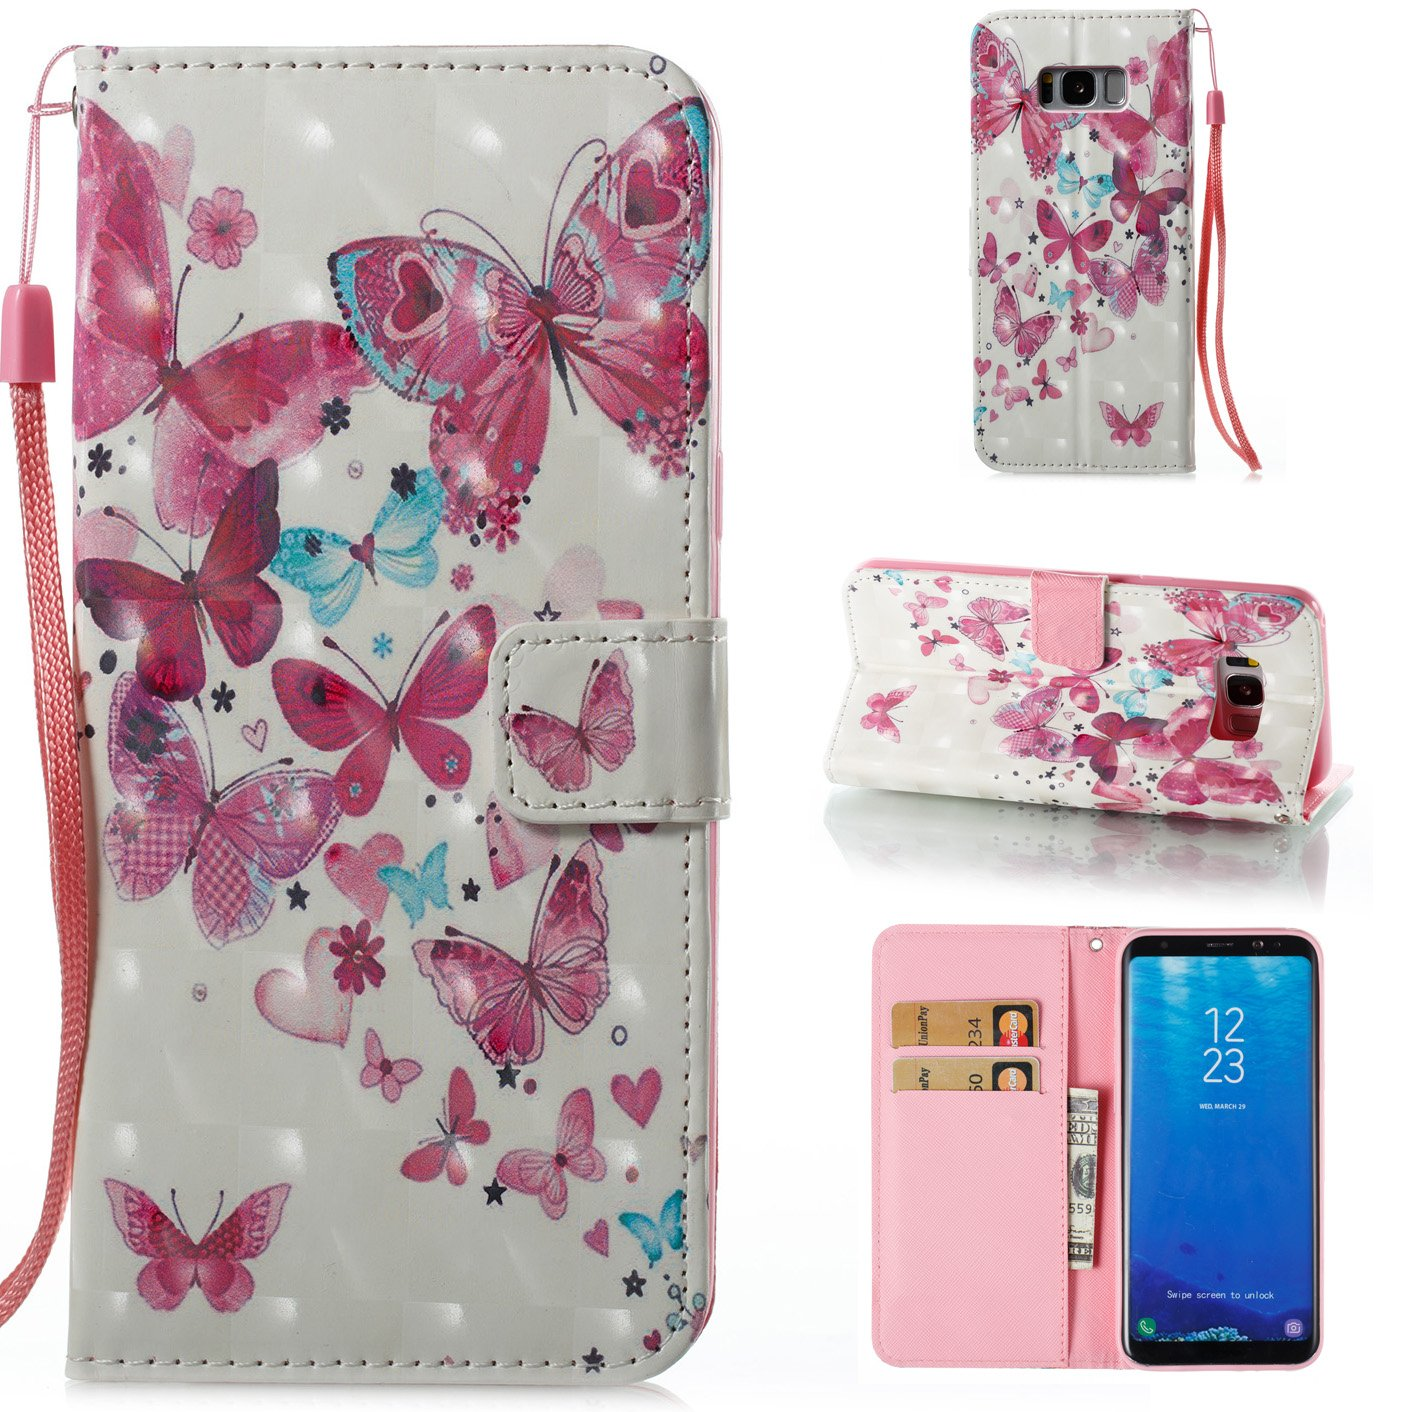 Galaxy S8 Plus 3D Phone Case, Samsung Galaxy S8 Plus Case with Fold Stand Feature, Gostyle Premium PU Leather Wallet Two Flamingos Painted Pattern Magnetic Flip Cover with Card Slots.